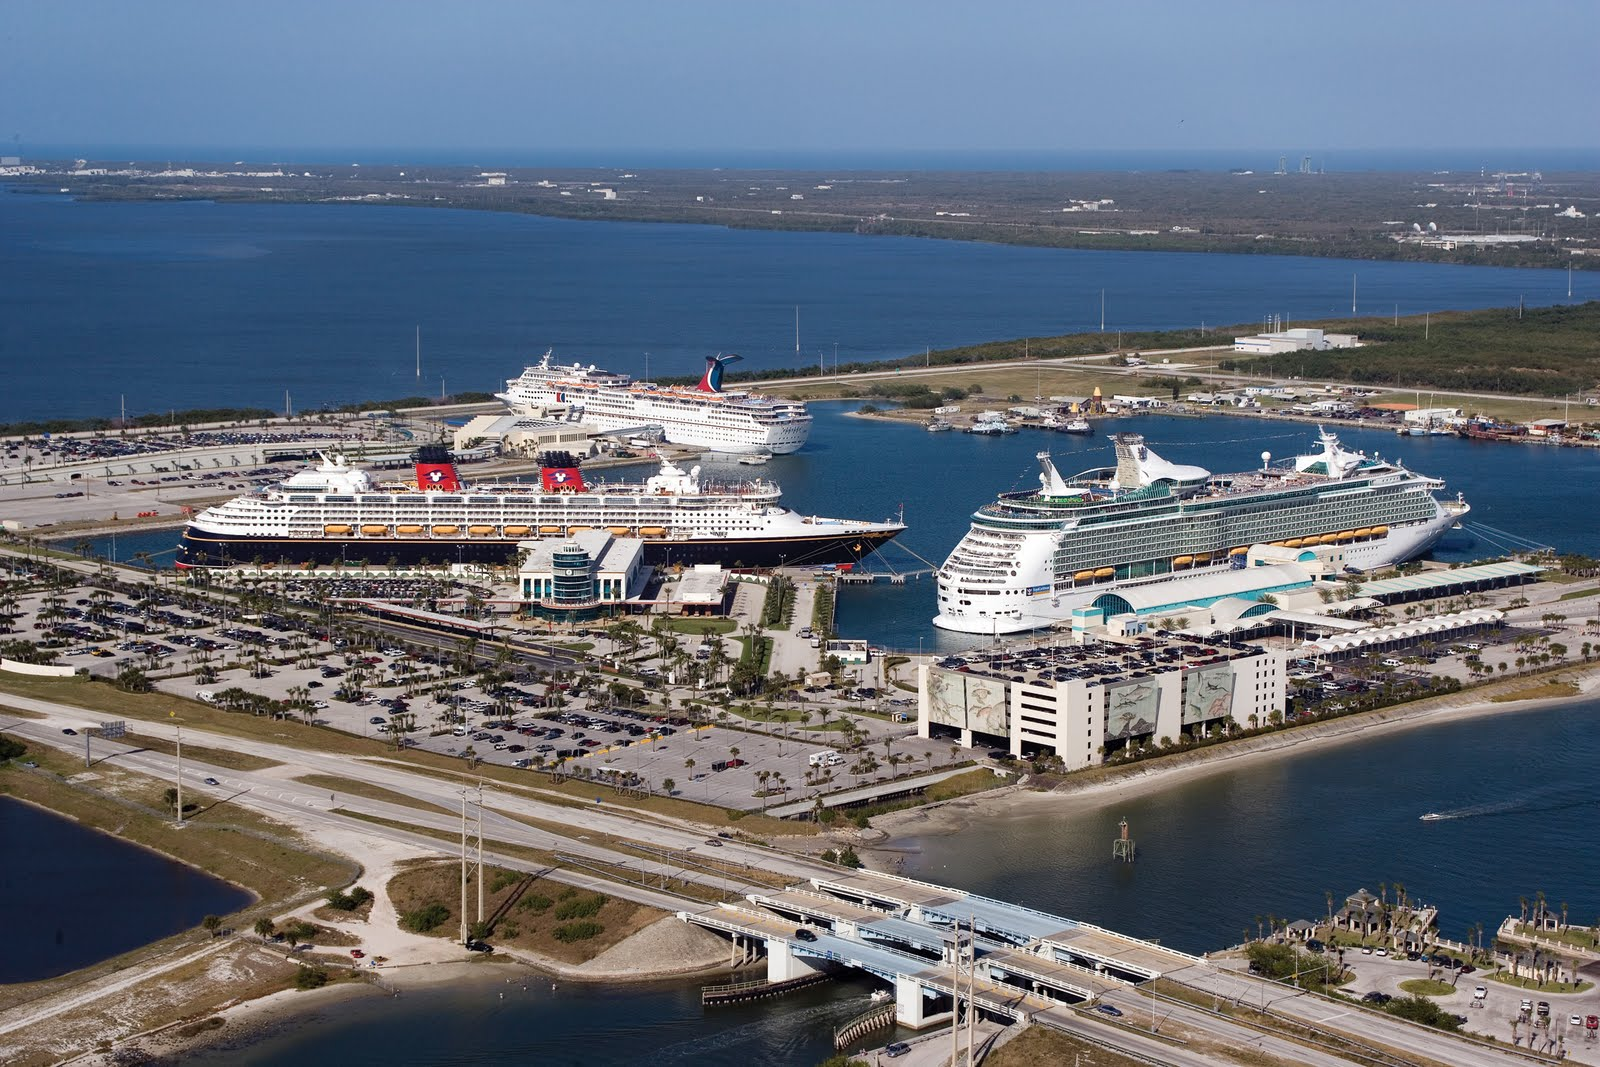 Port canaveral casino cruises 15